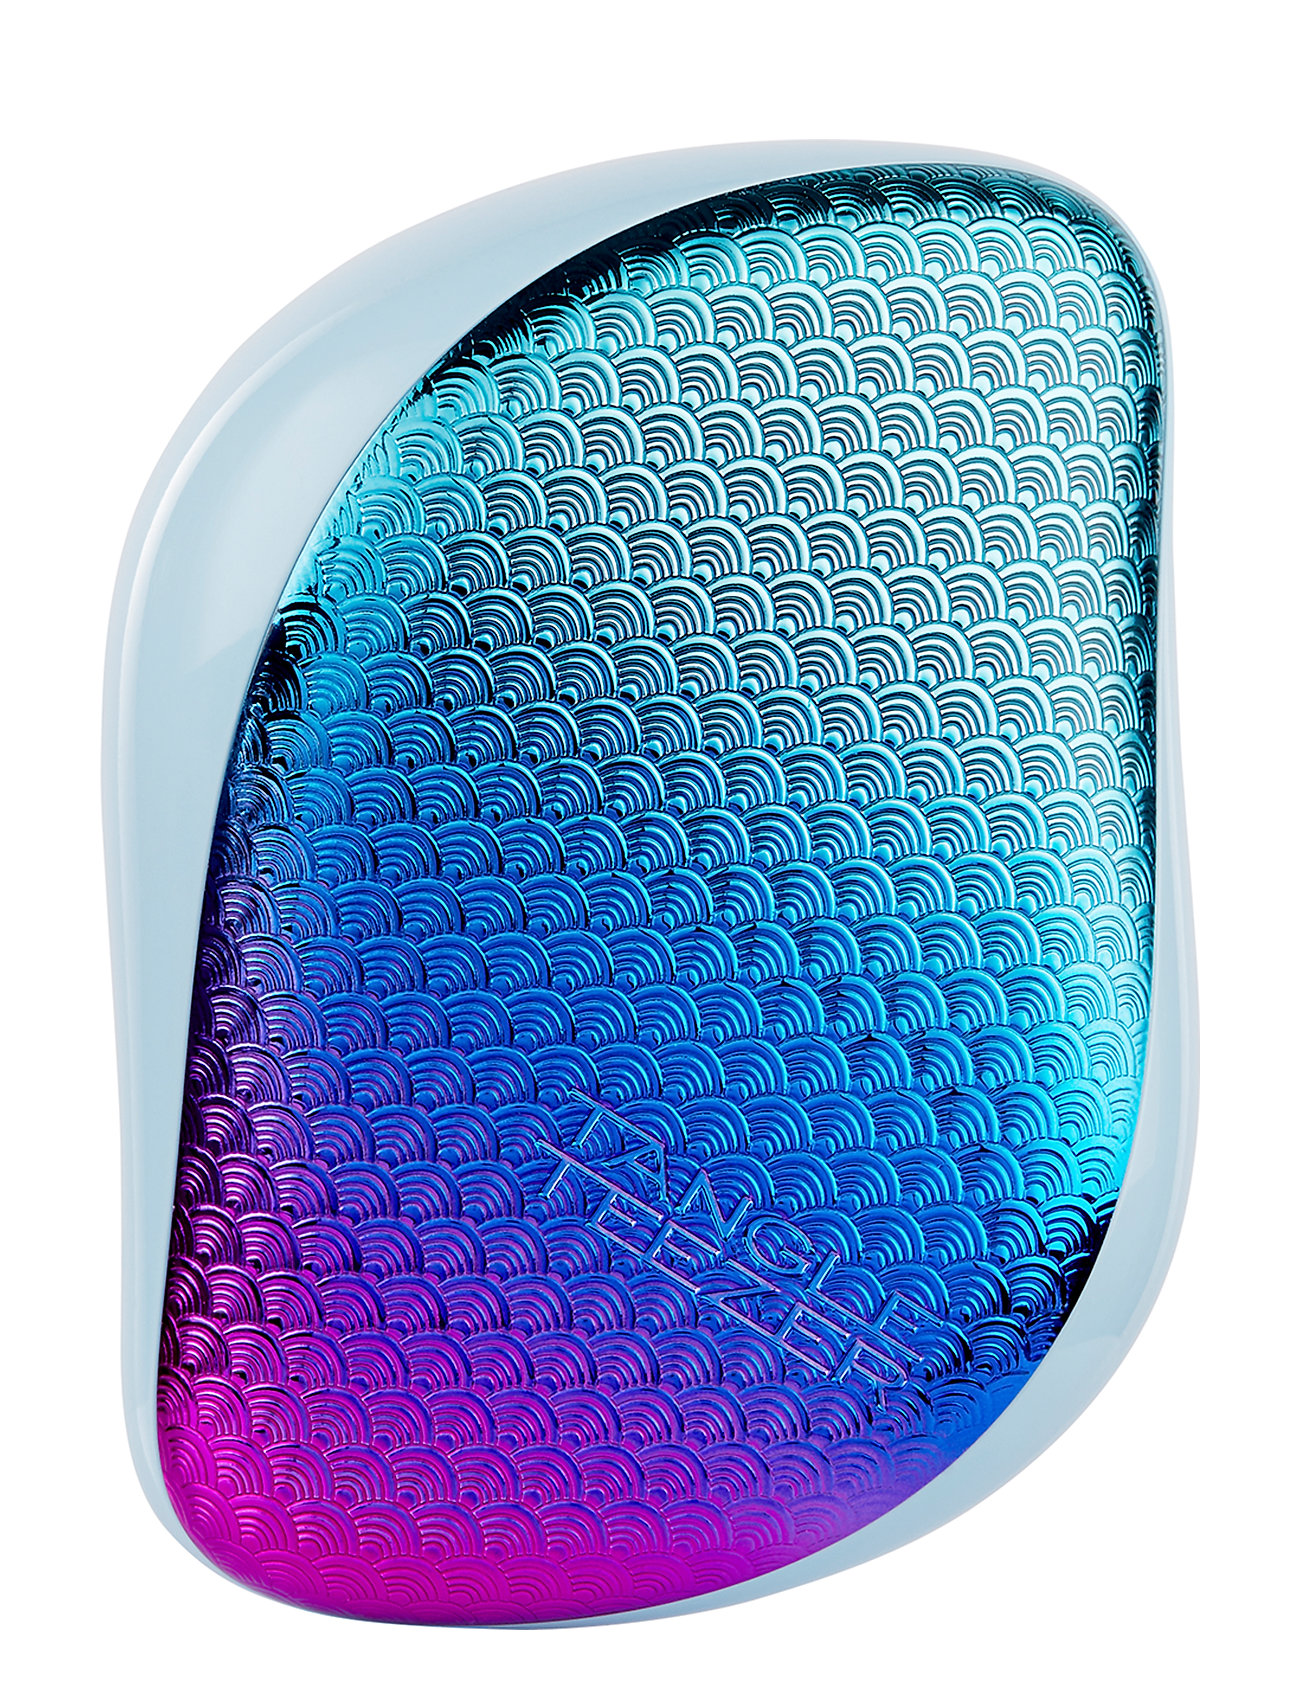 Tangle Teezer Tangle Teezer Compact Styler Sundowner Mermaid - NO COLOUR